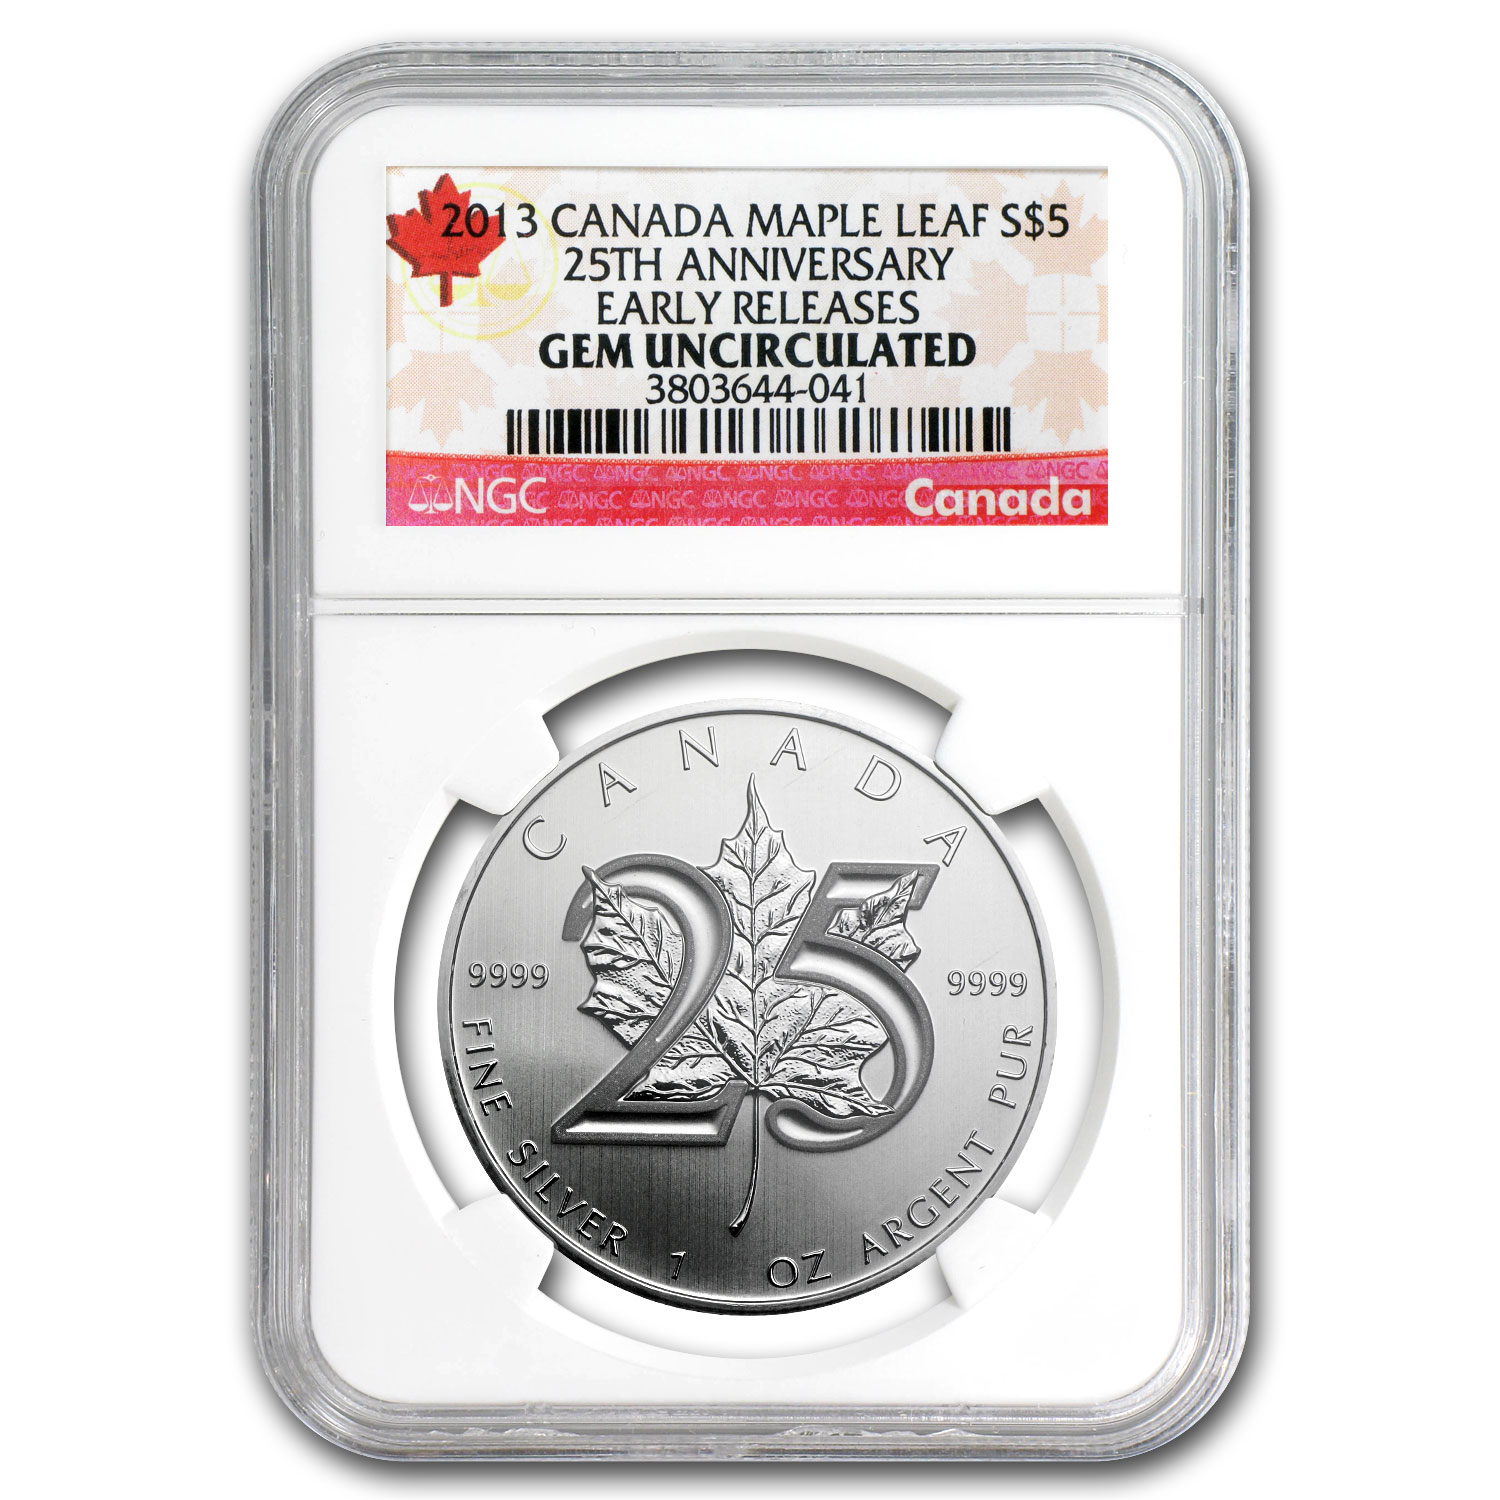 2013 Canada 1 oz Silver Maple Leaf Gem Unc NGC (ER, 25th Anniv)